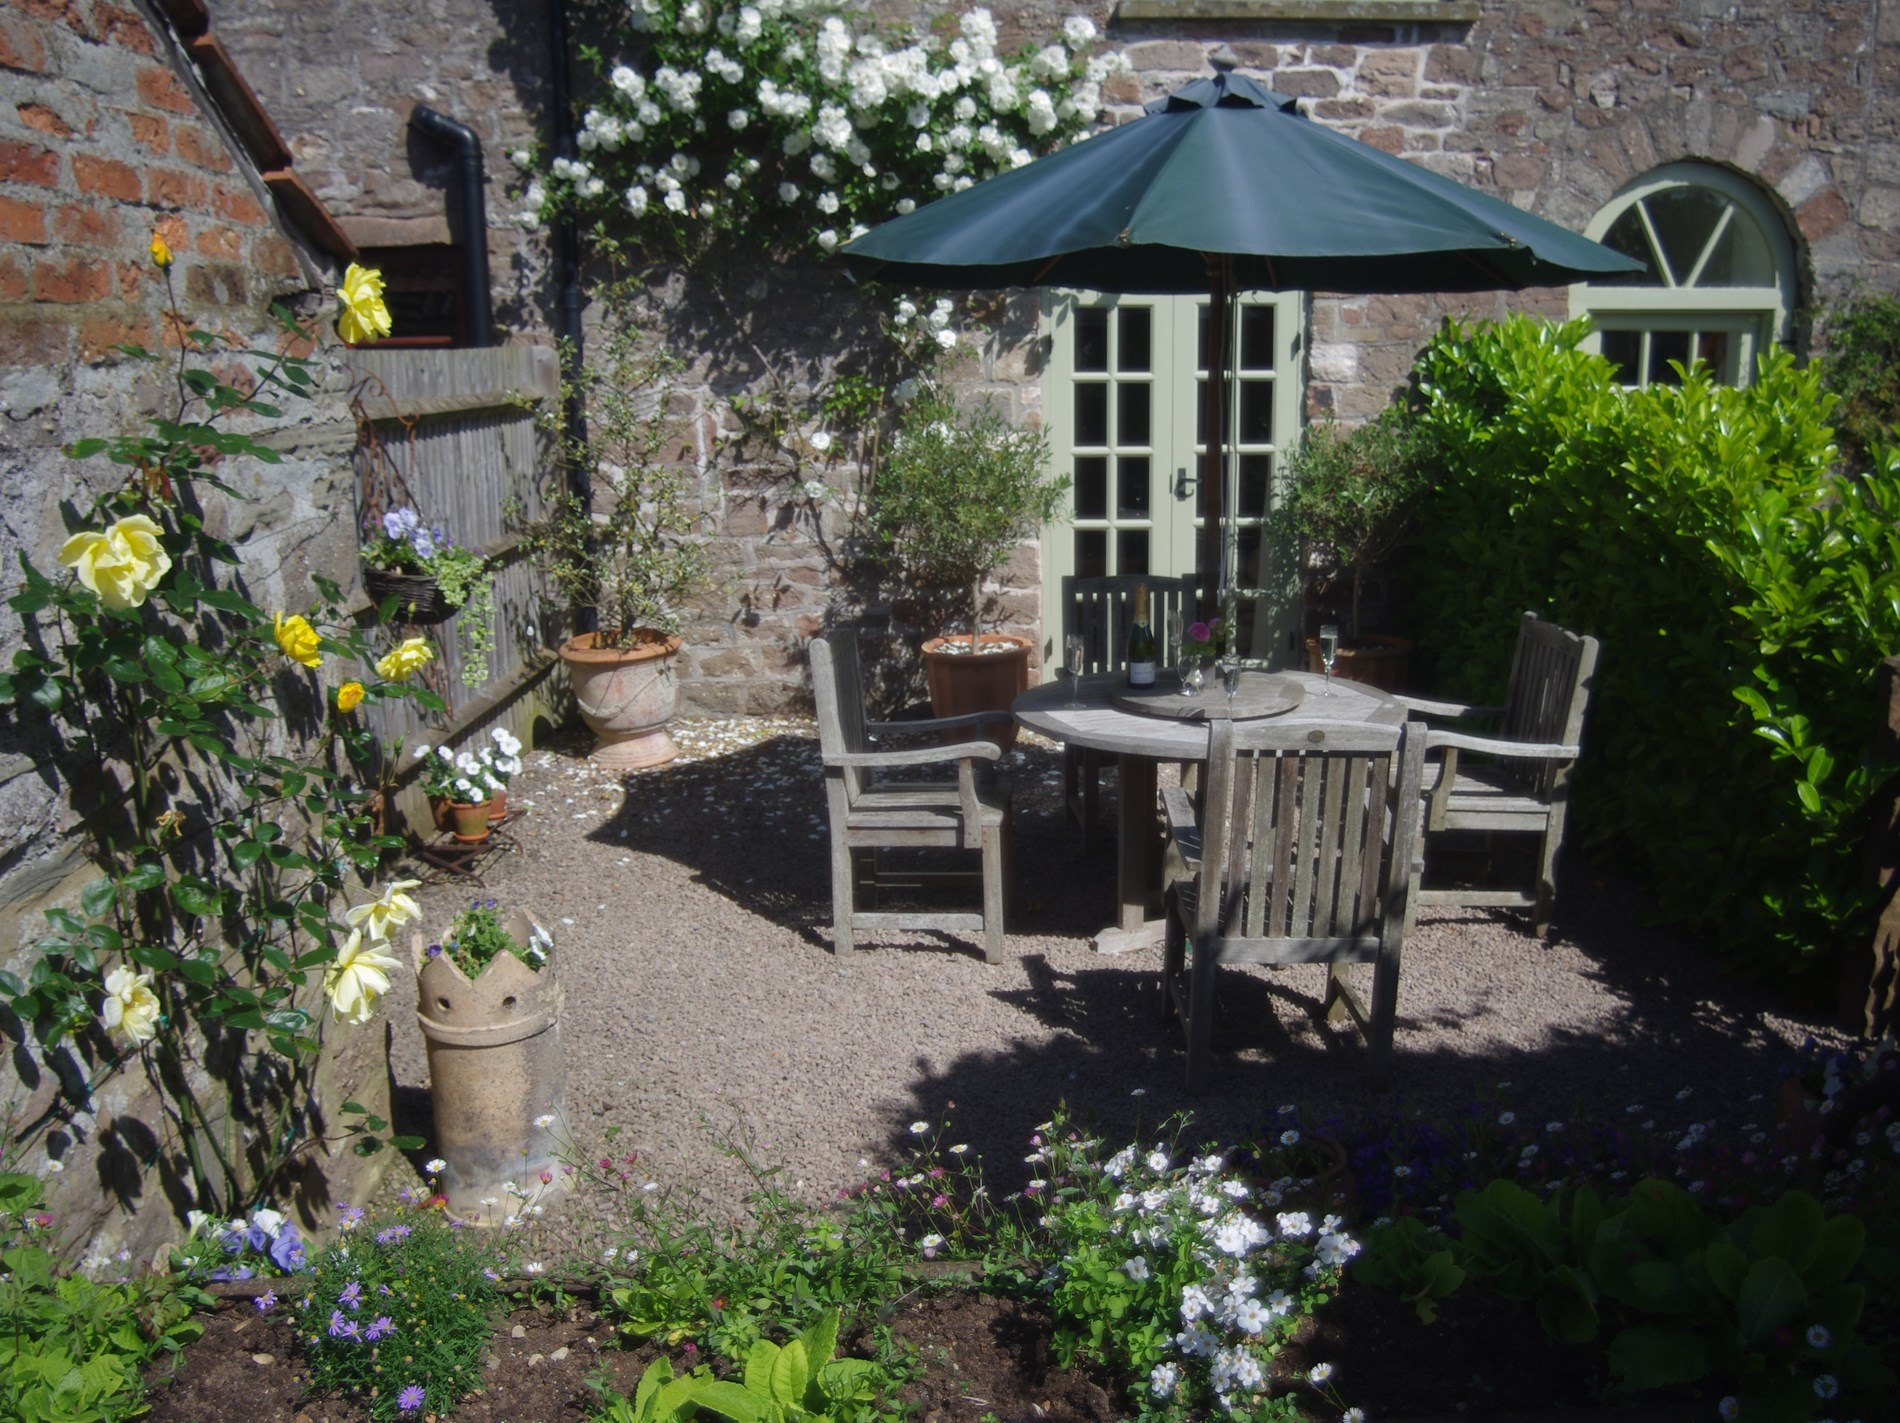 Sit back and relax in the beautiful courtyard garden